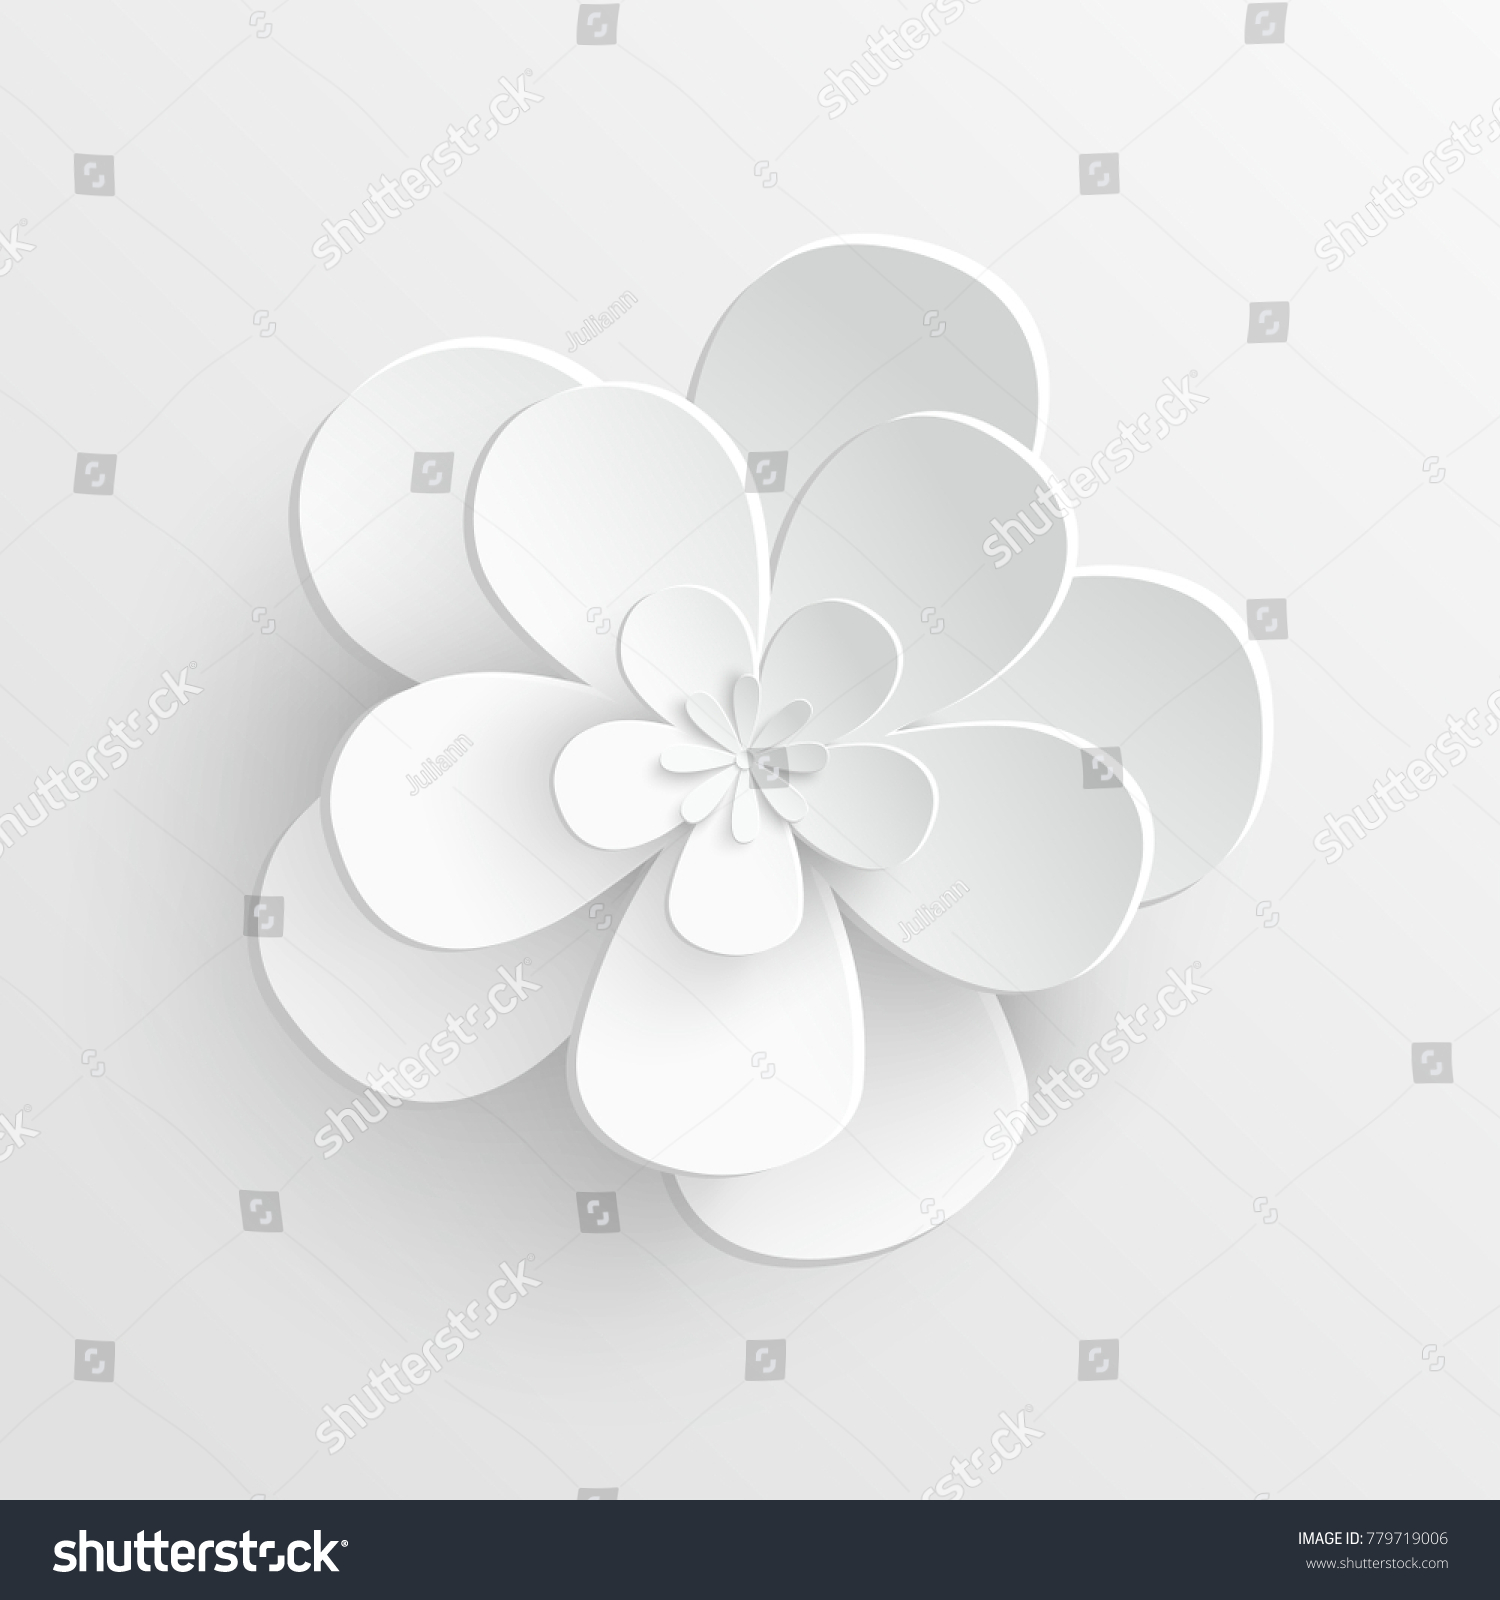 Paper Flower Lotus Cut Paper On Stock Vector 779719006 Shutterstock